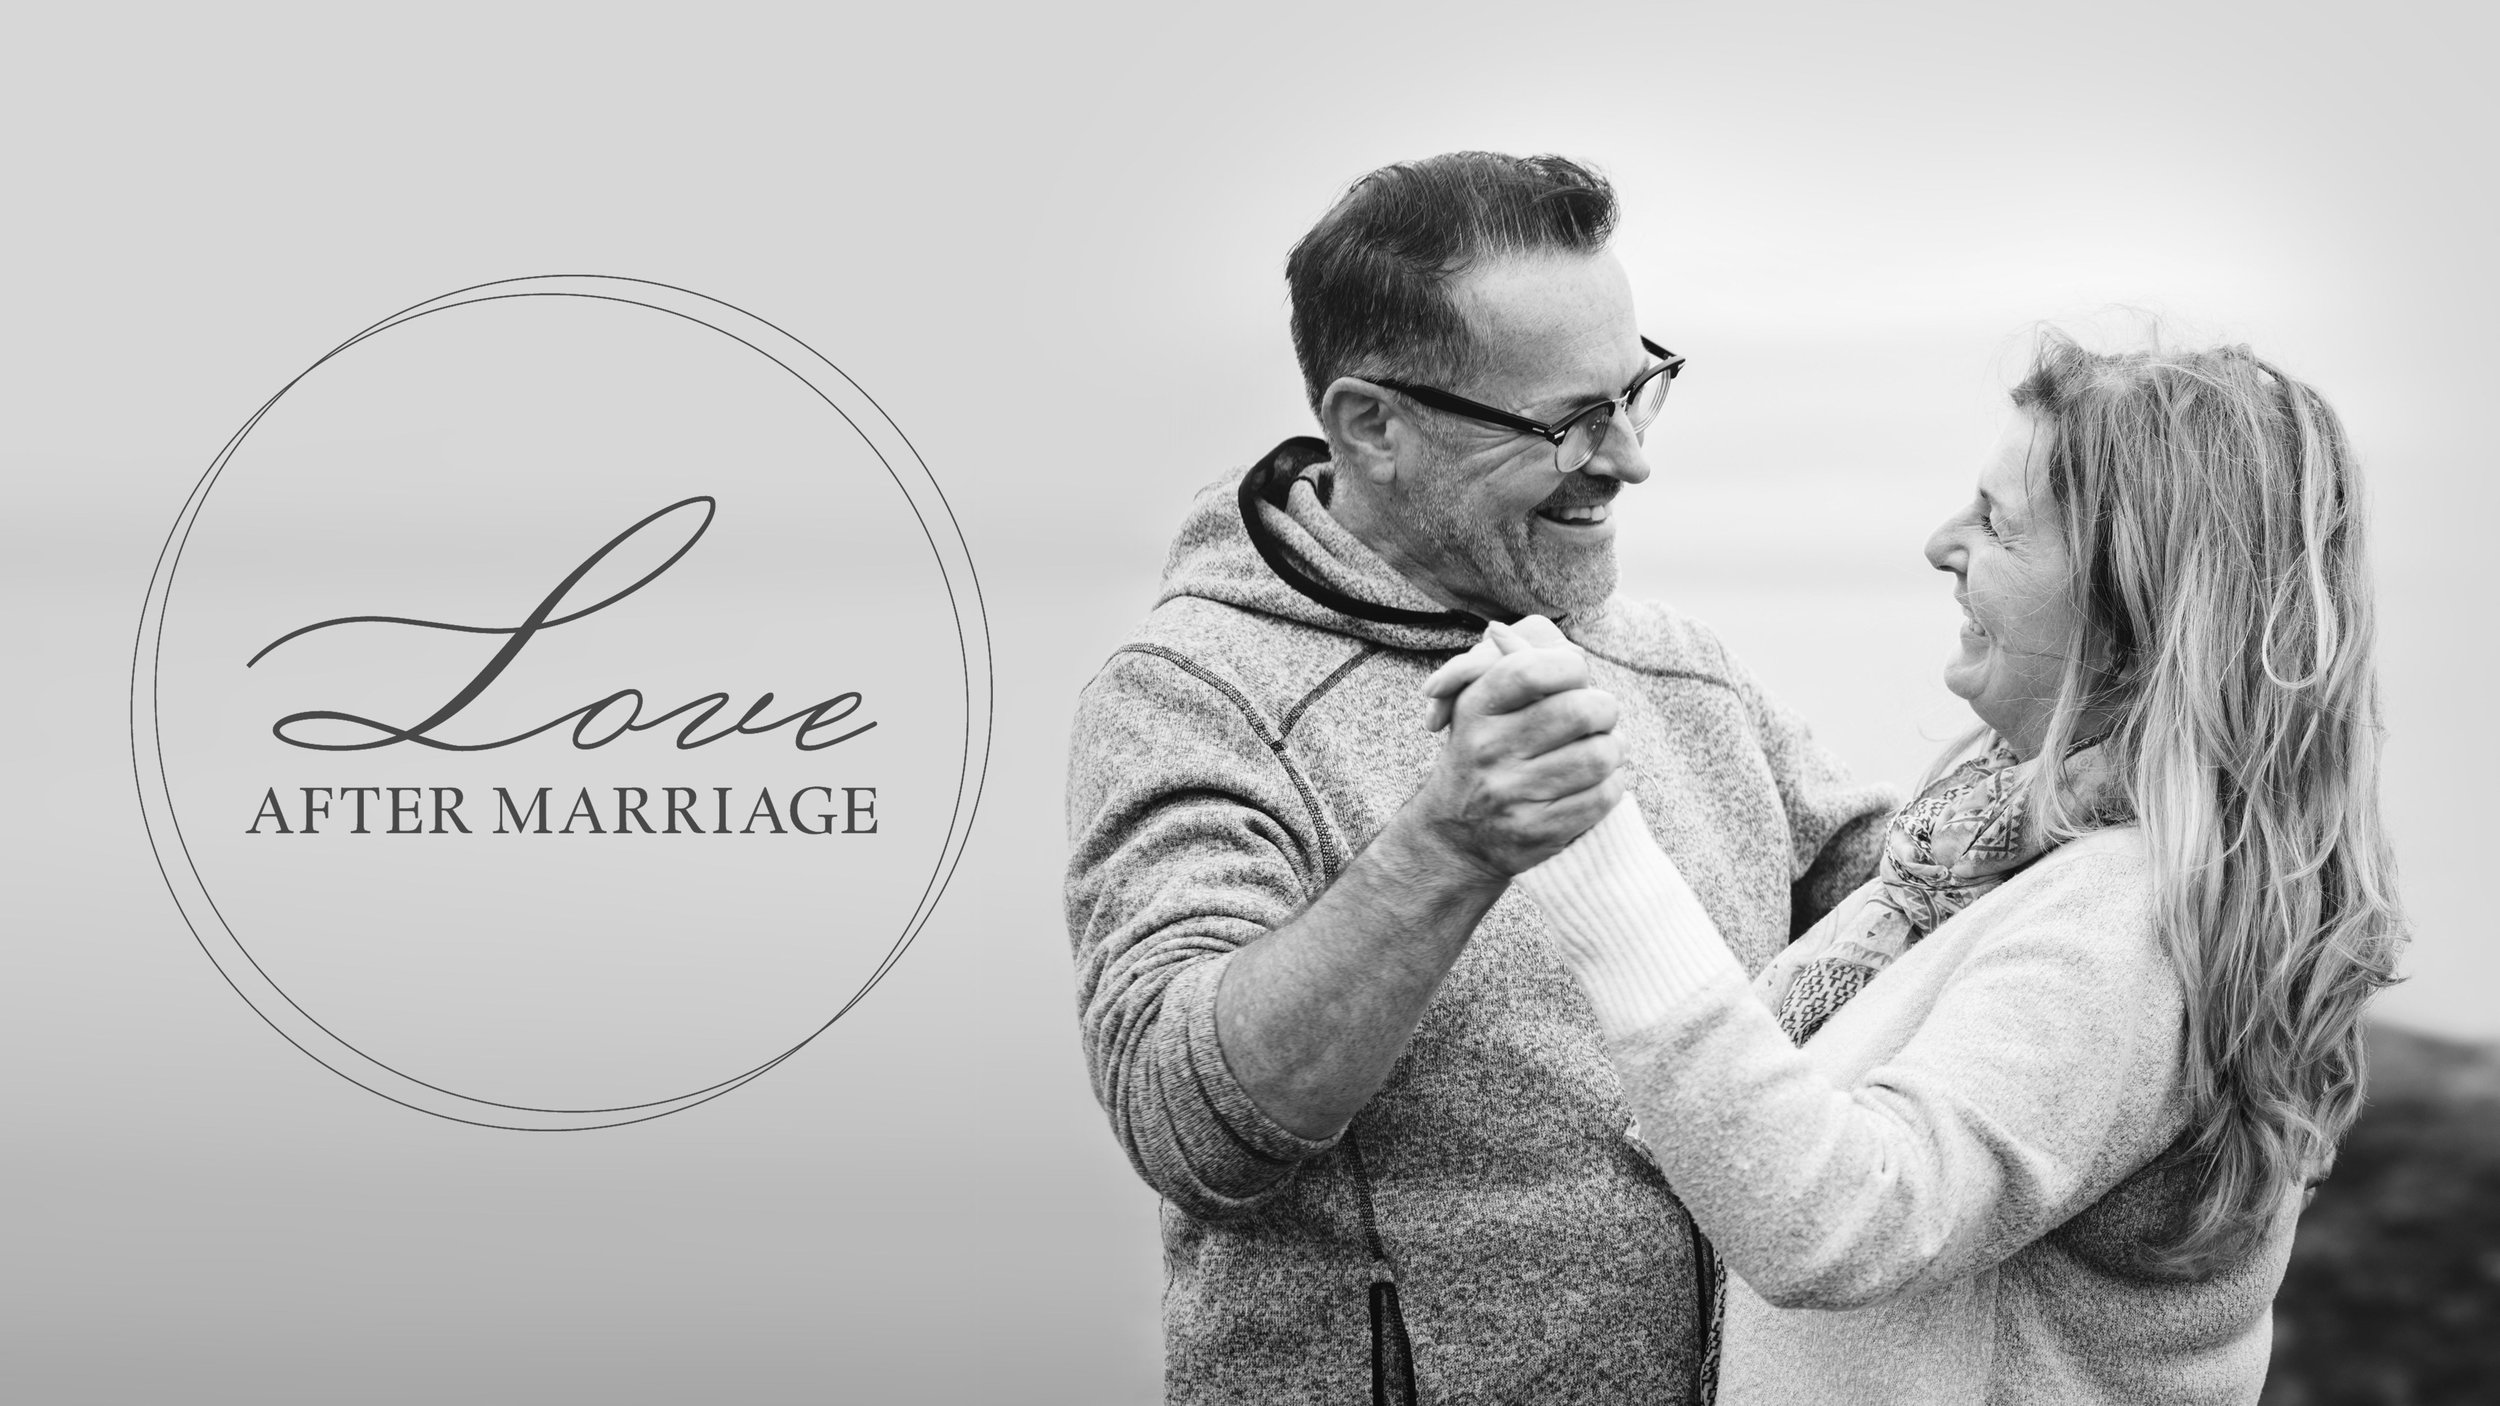 Love After Marriage - Discover a deeper level of connection and experience the marriage you've always wanted.